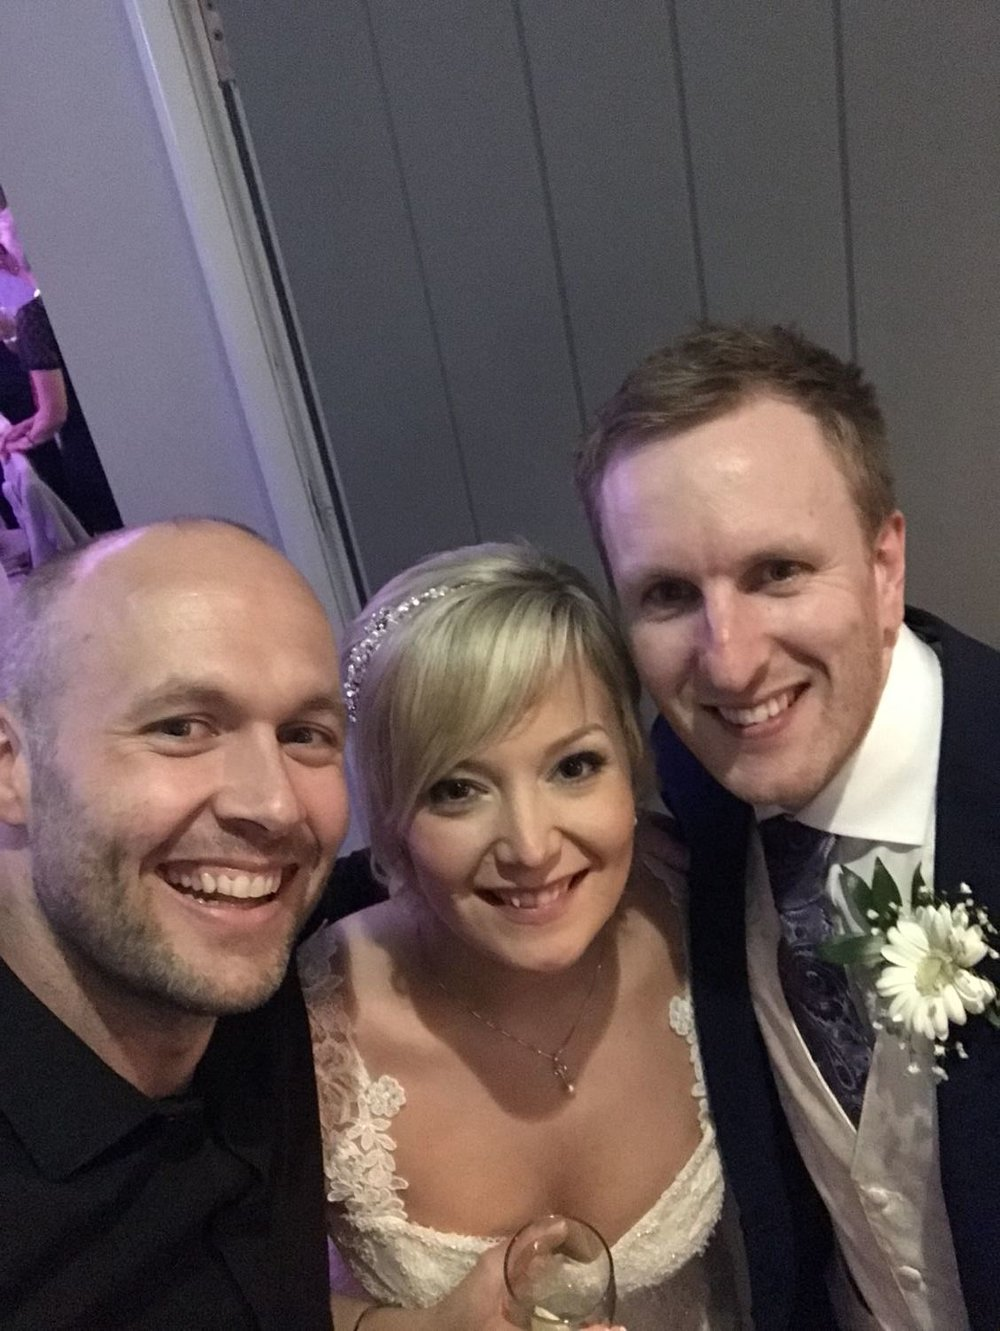 selfie of me and bride and groom